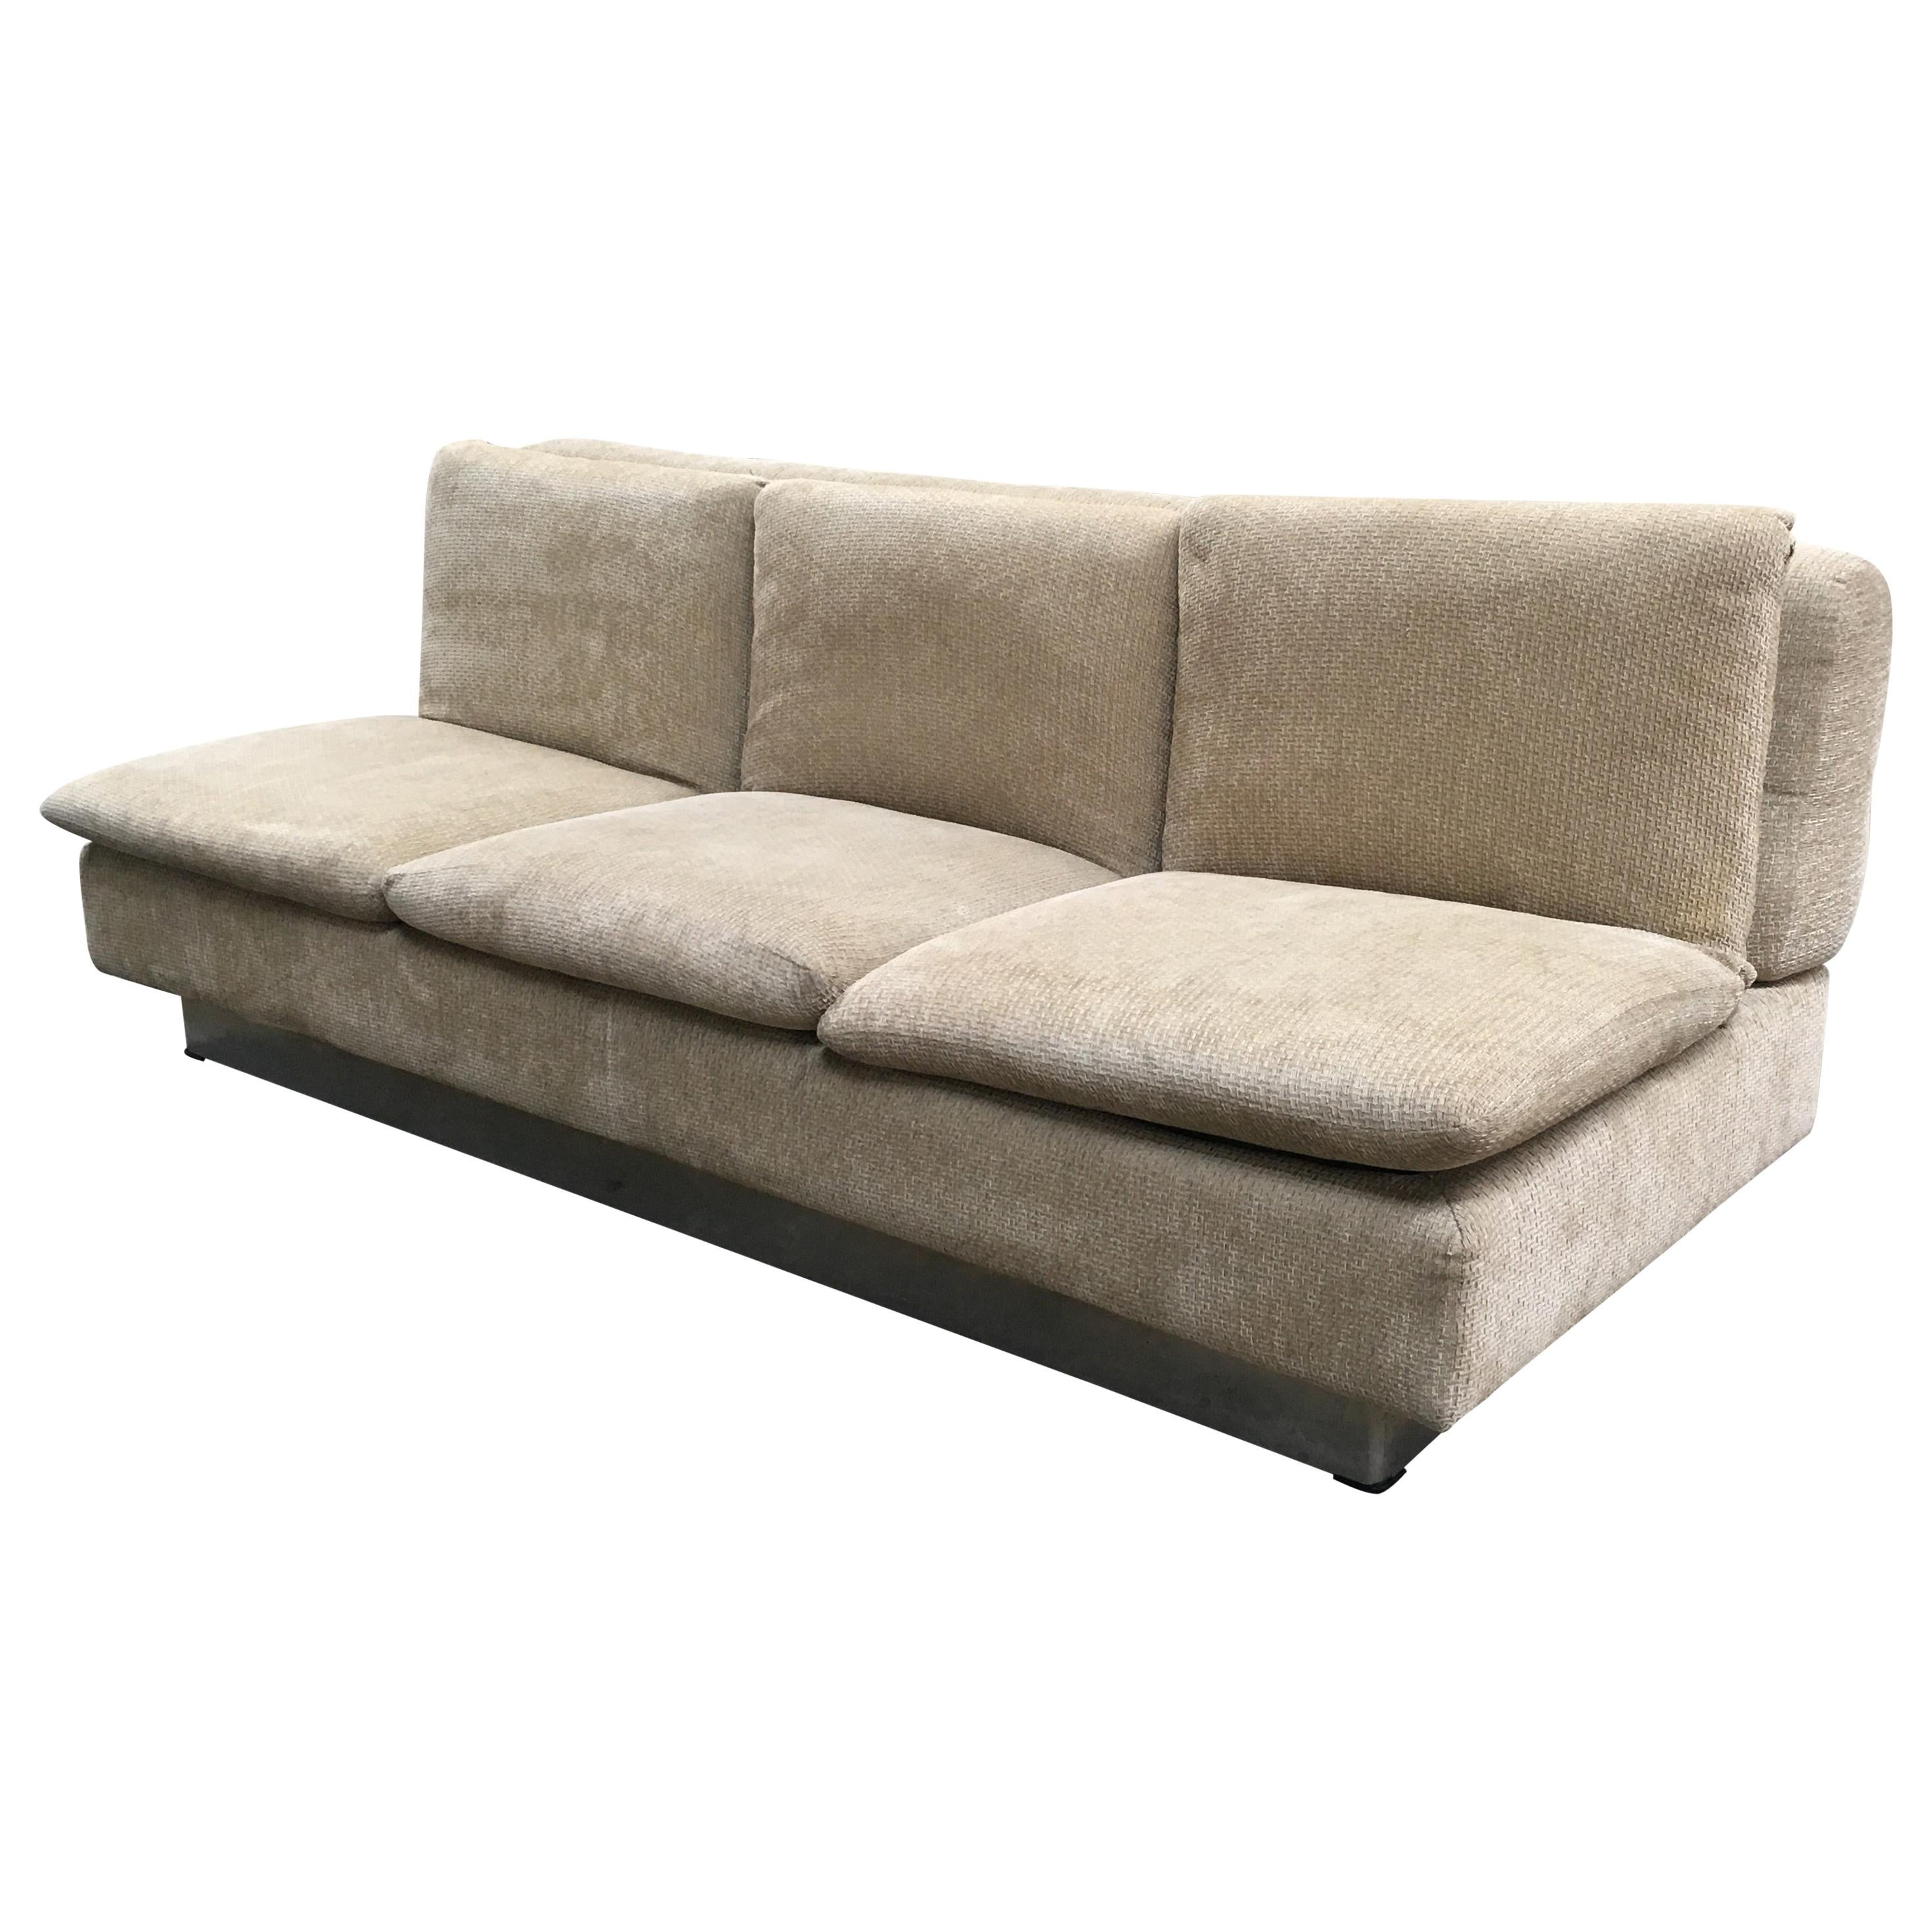 Picture of: Mid Century Modern Italian Sofa Bed By Saporiti 1970s For Sale At 1stdibs